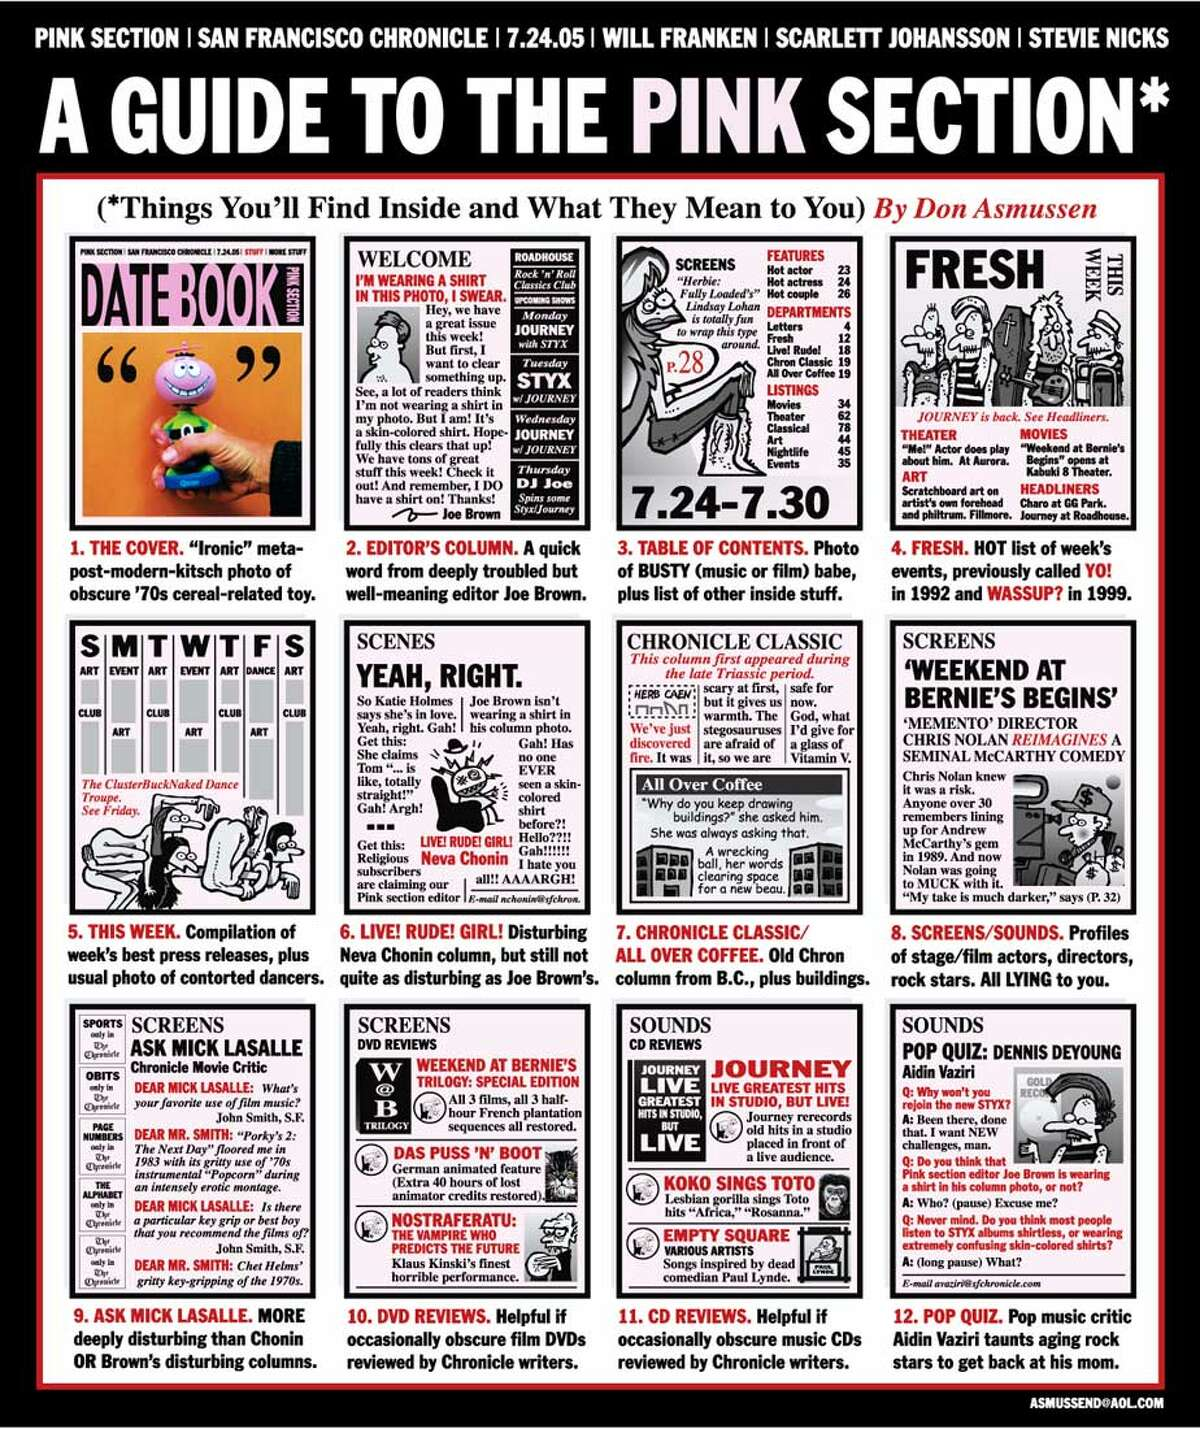 A guide to the Pink section. Chronicle illustration by Don Asmussen